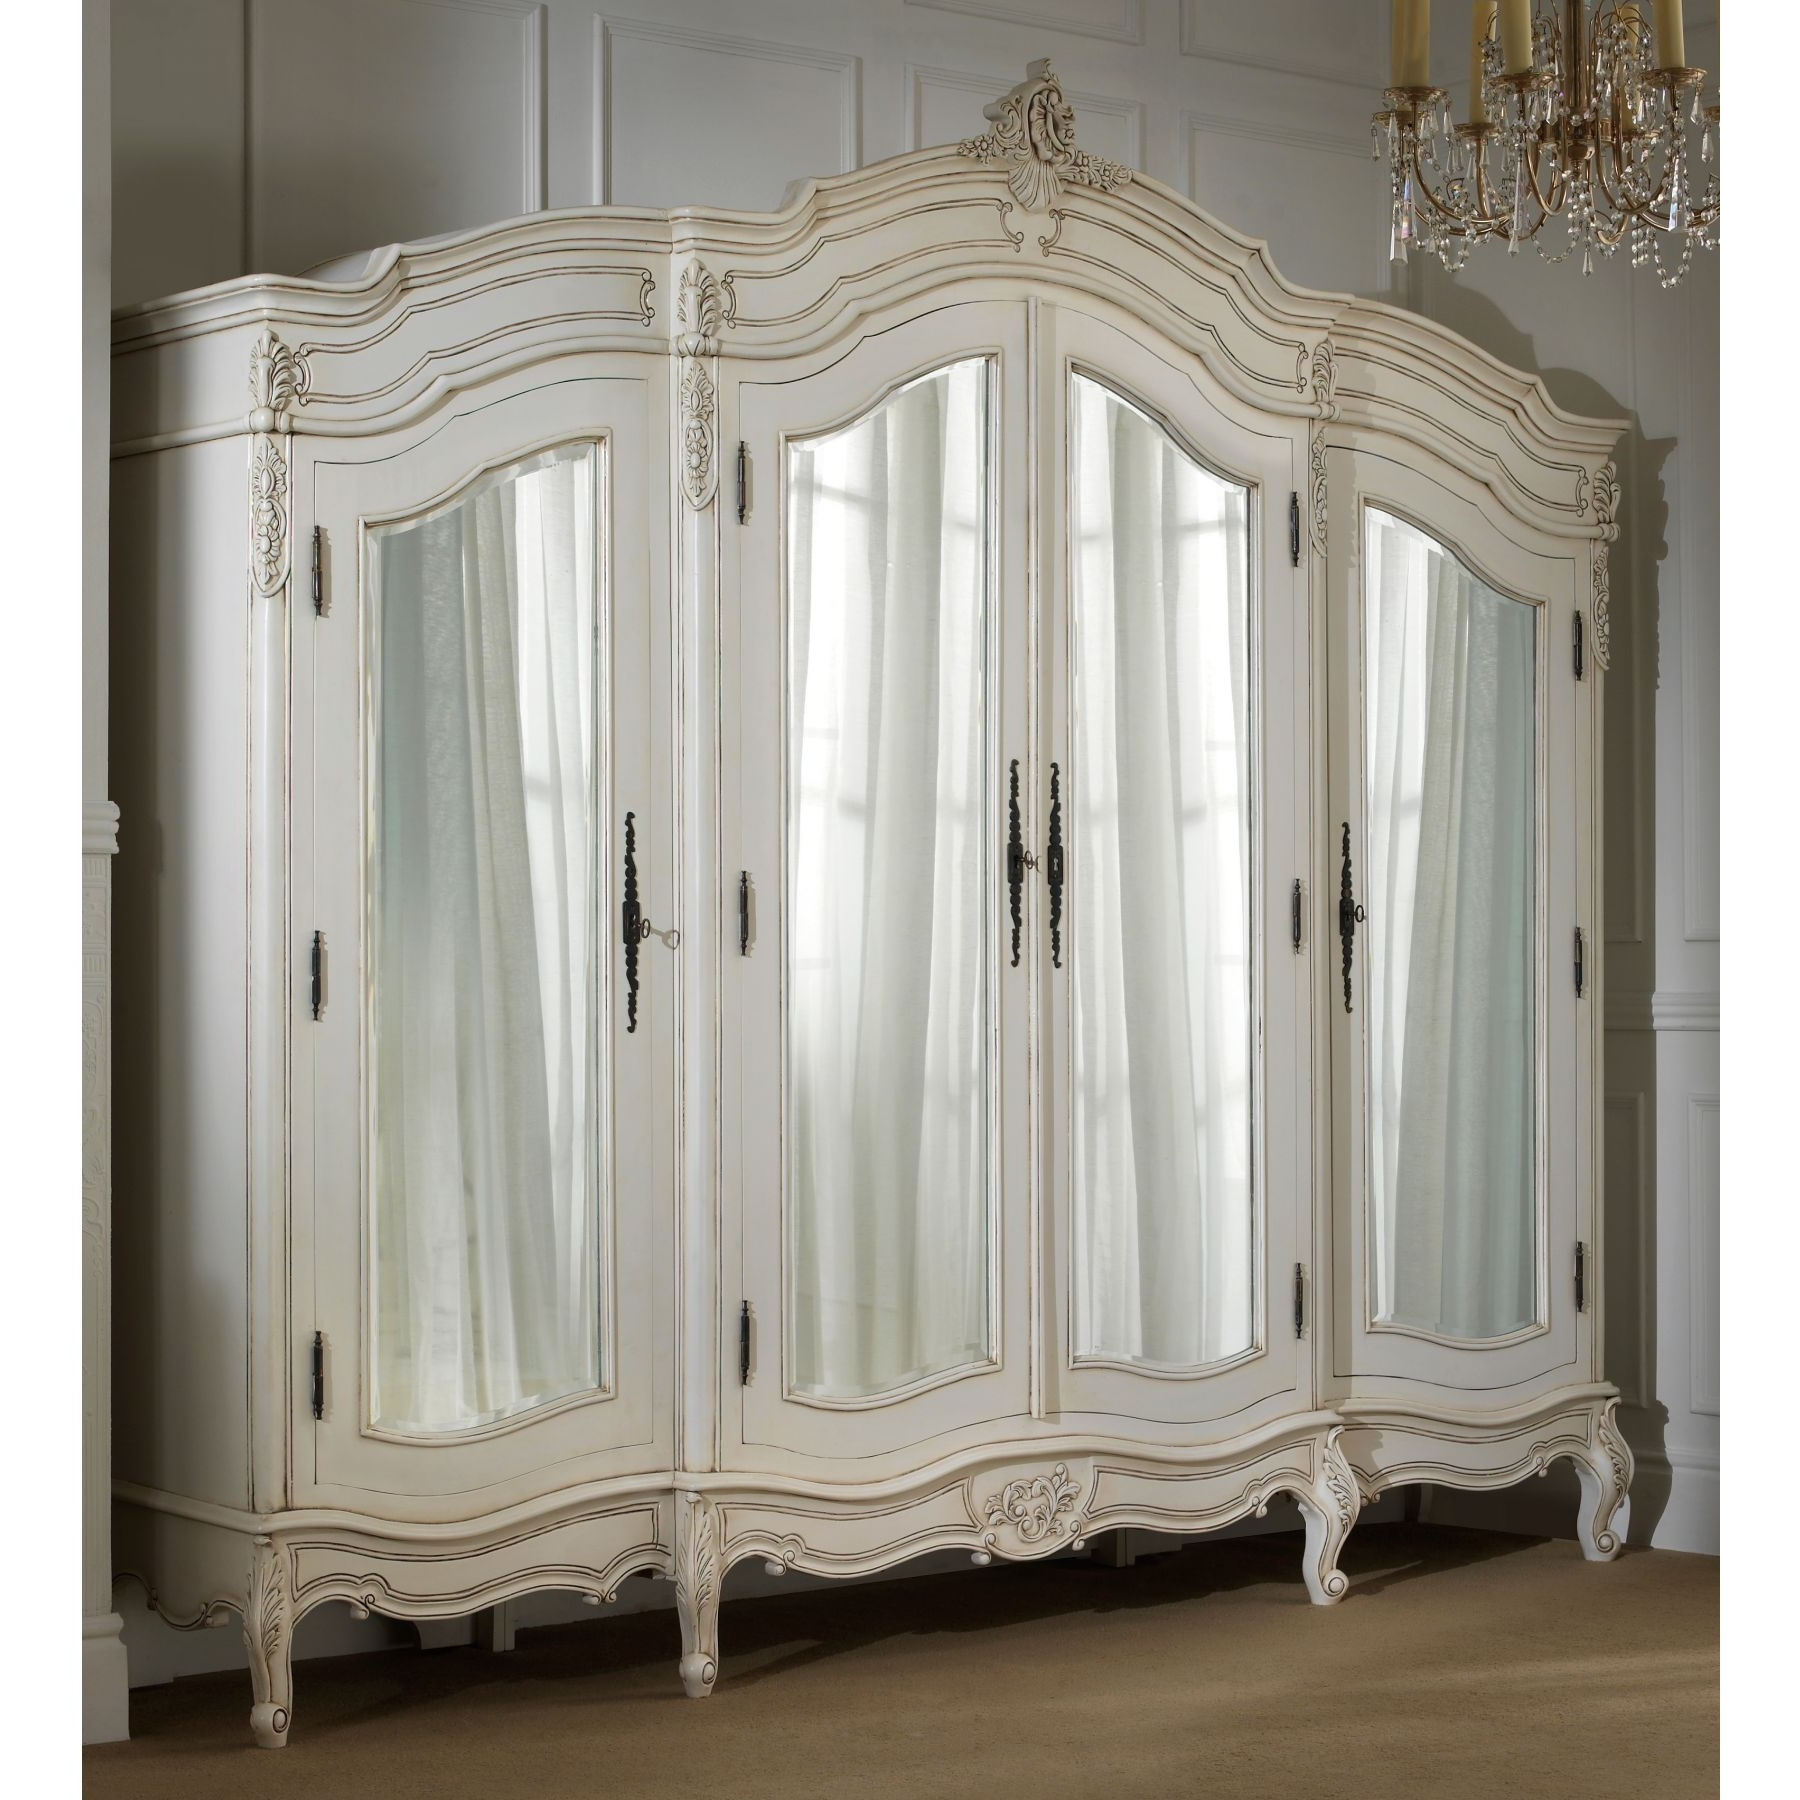 Rochelle 4 Door Antique French Wardrobe With Regard To Most Current Rococo Wardrobes (View 6 of 15)